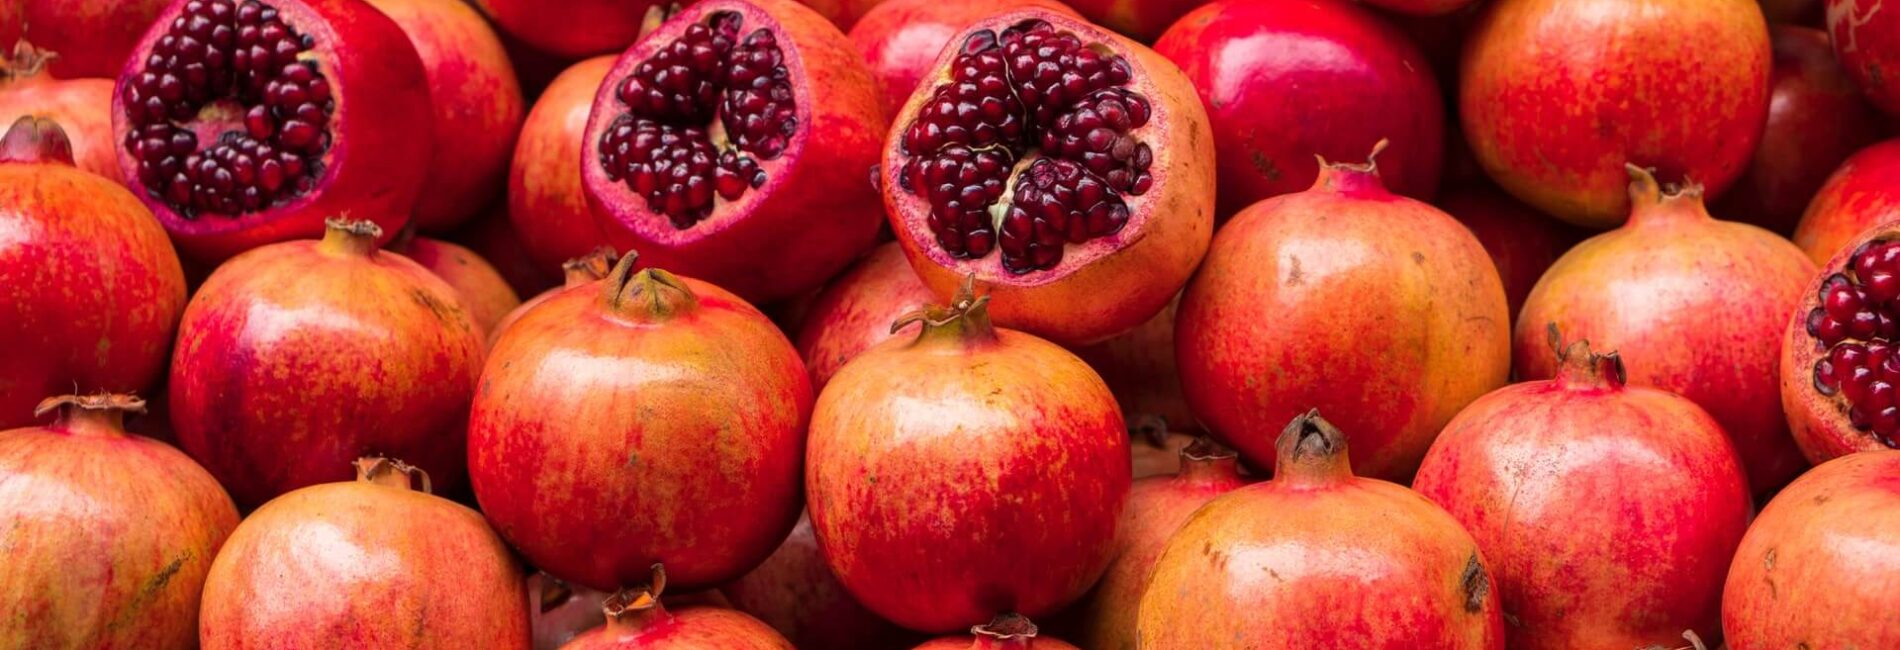 Easily Seed a Pomegranate